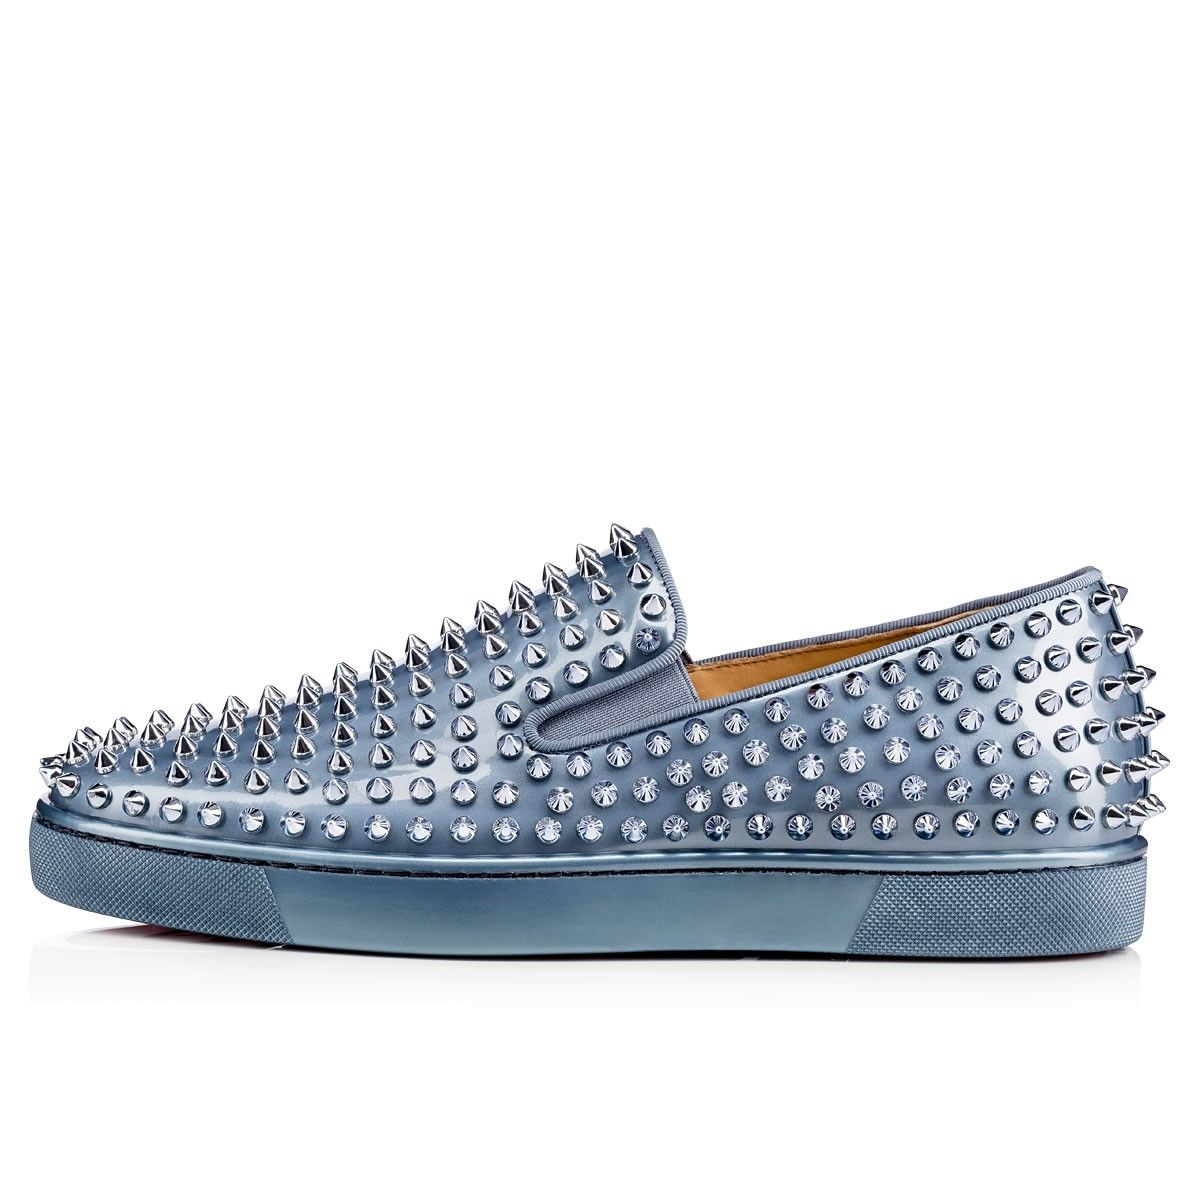 Christian Louboutin Leather rollerboat Sneakers Spikes Rollers